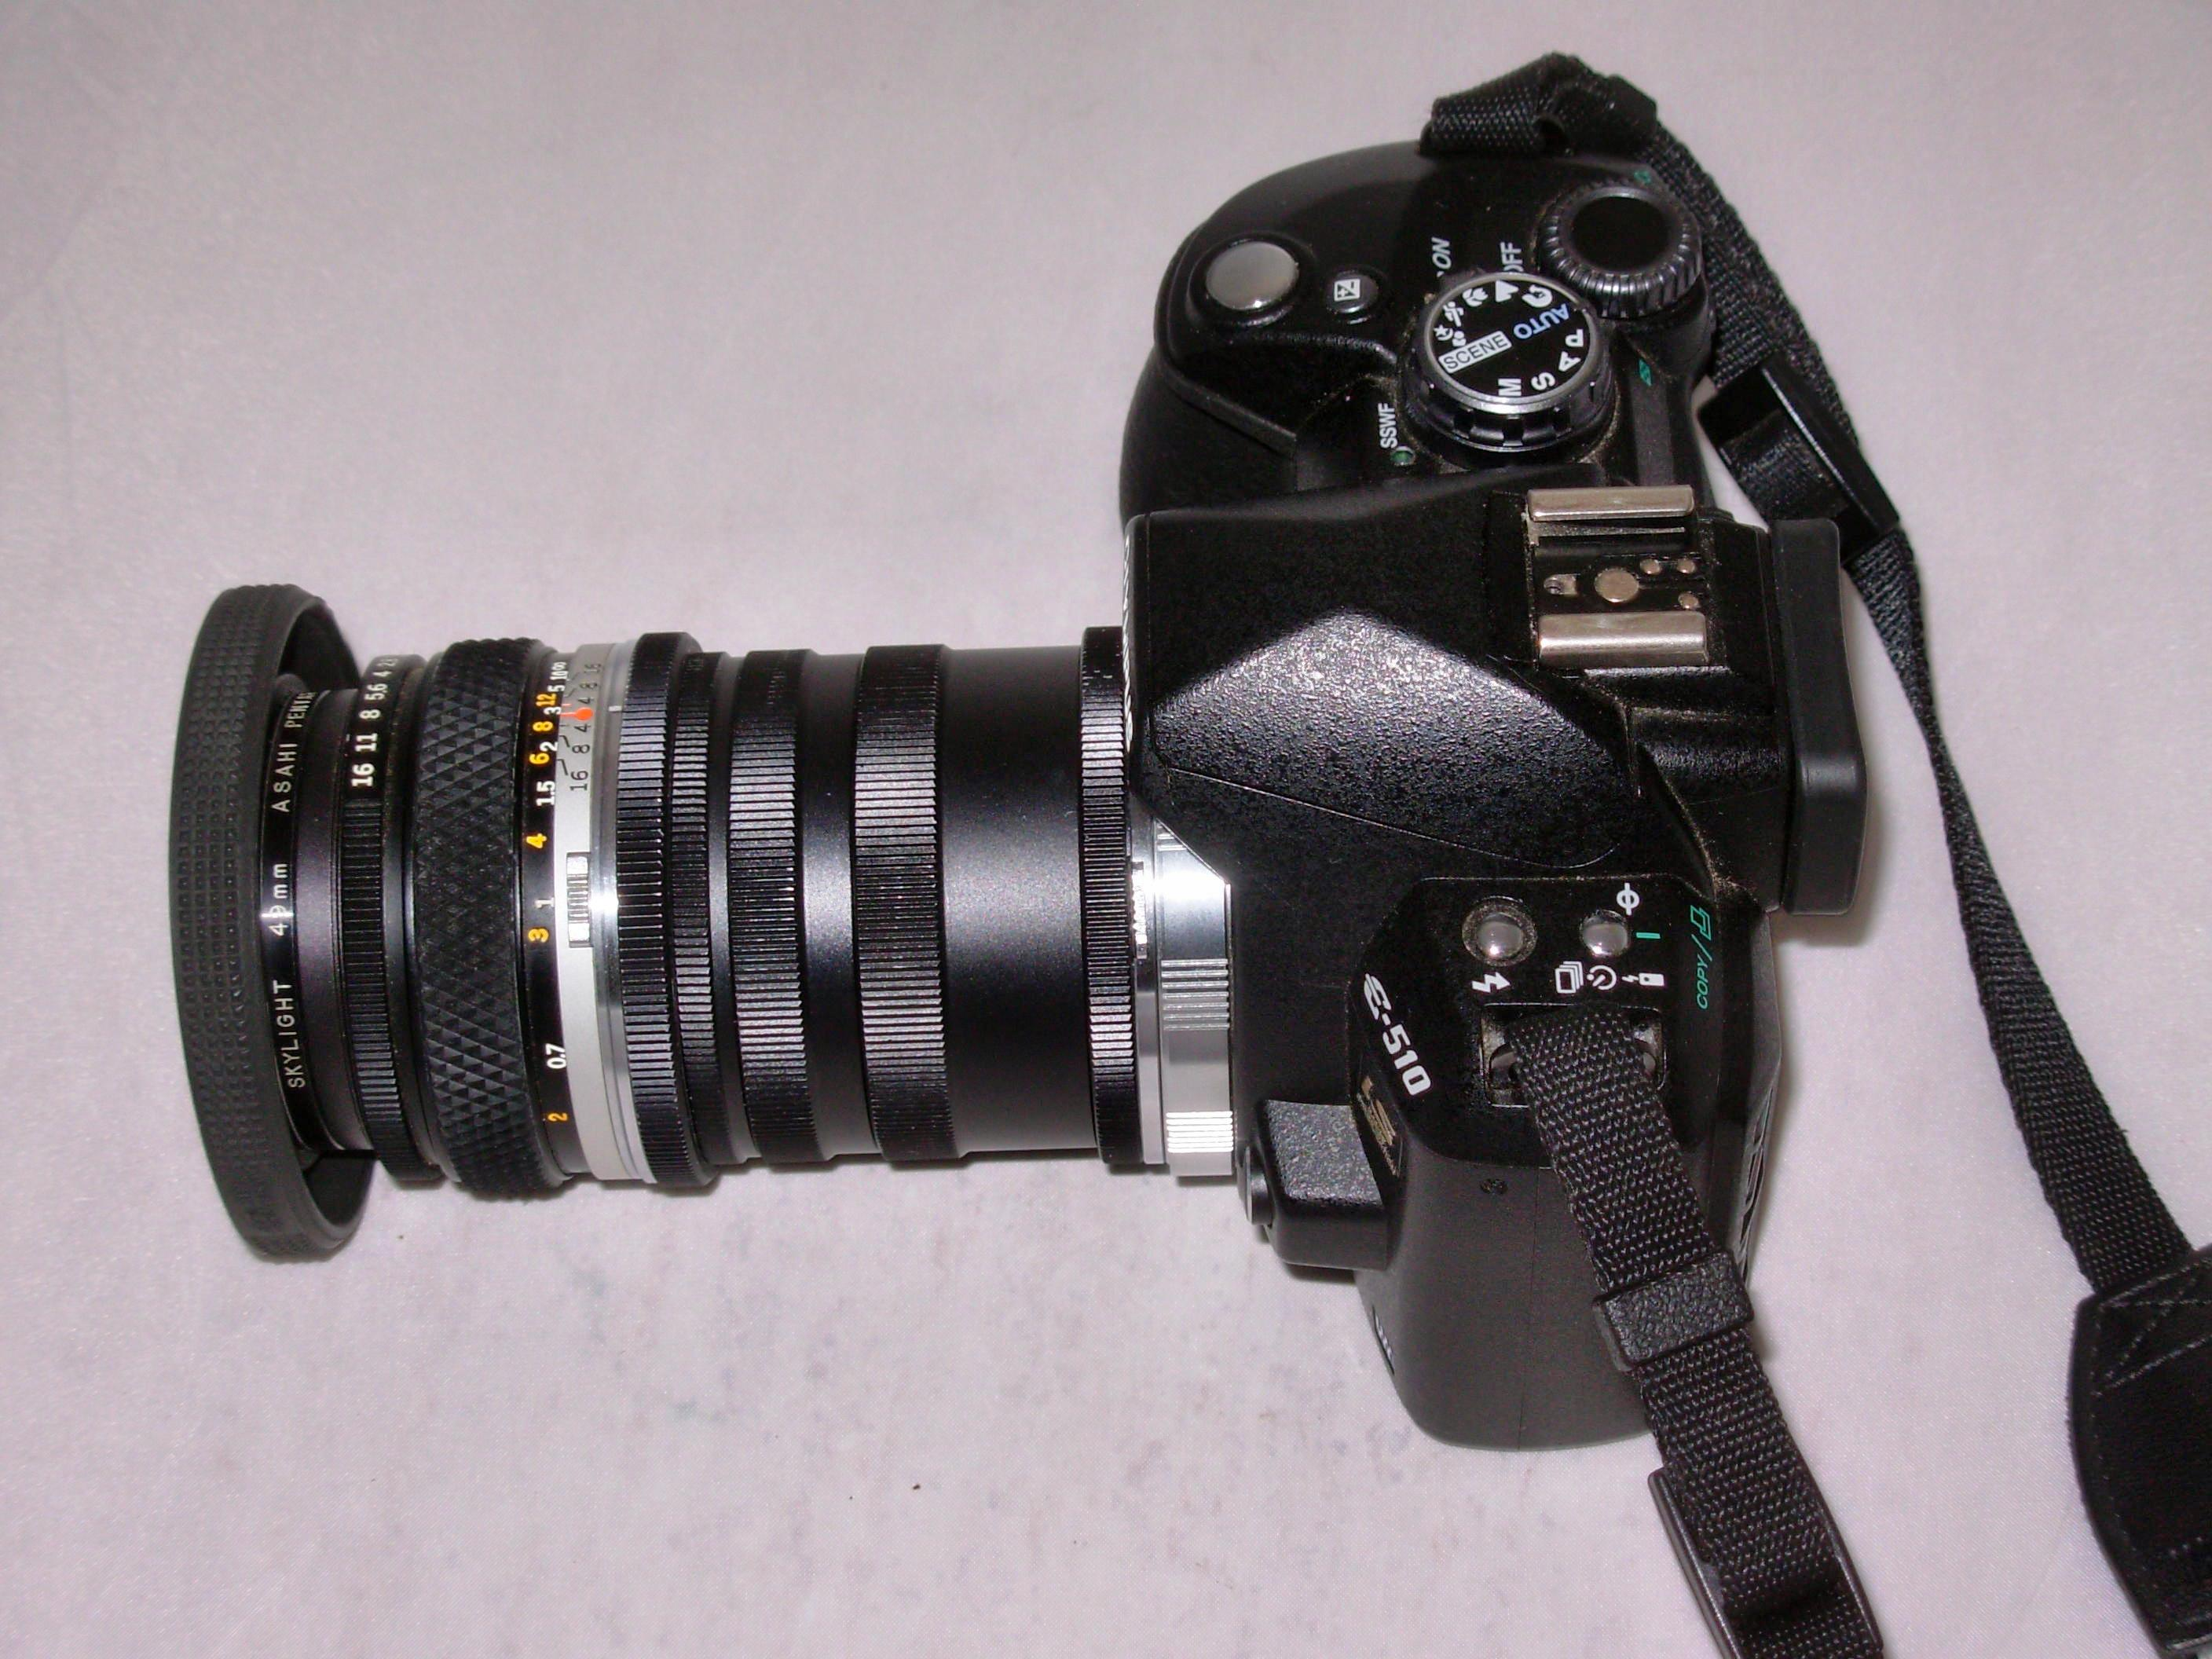 This should be e-510-with-extension-tubes-and-om-lens-1.jpeg.  Is it missing?